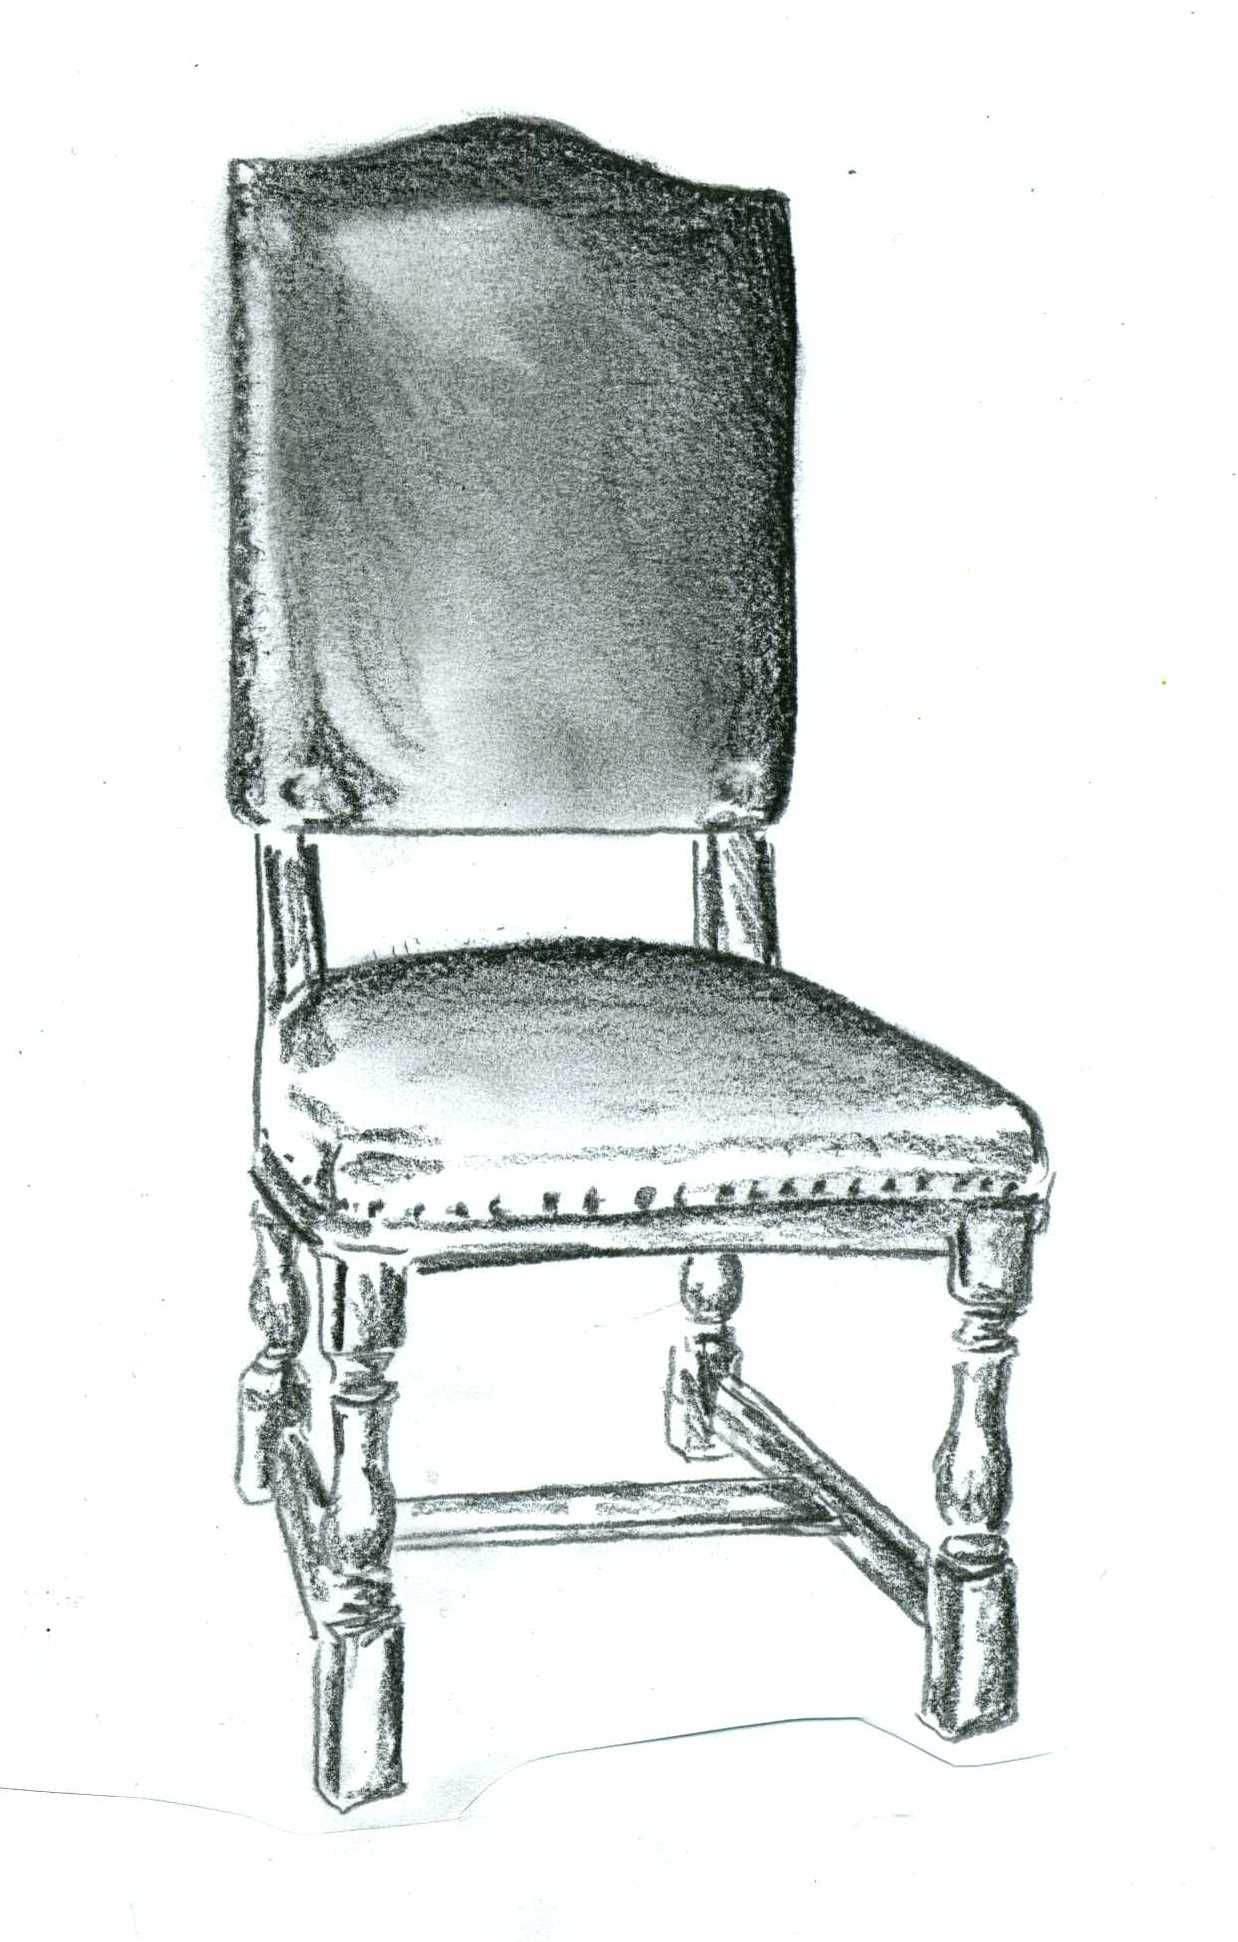 Queen Anne Wingback chair sketch Andrea Andert